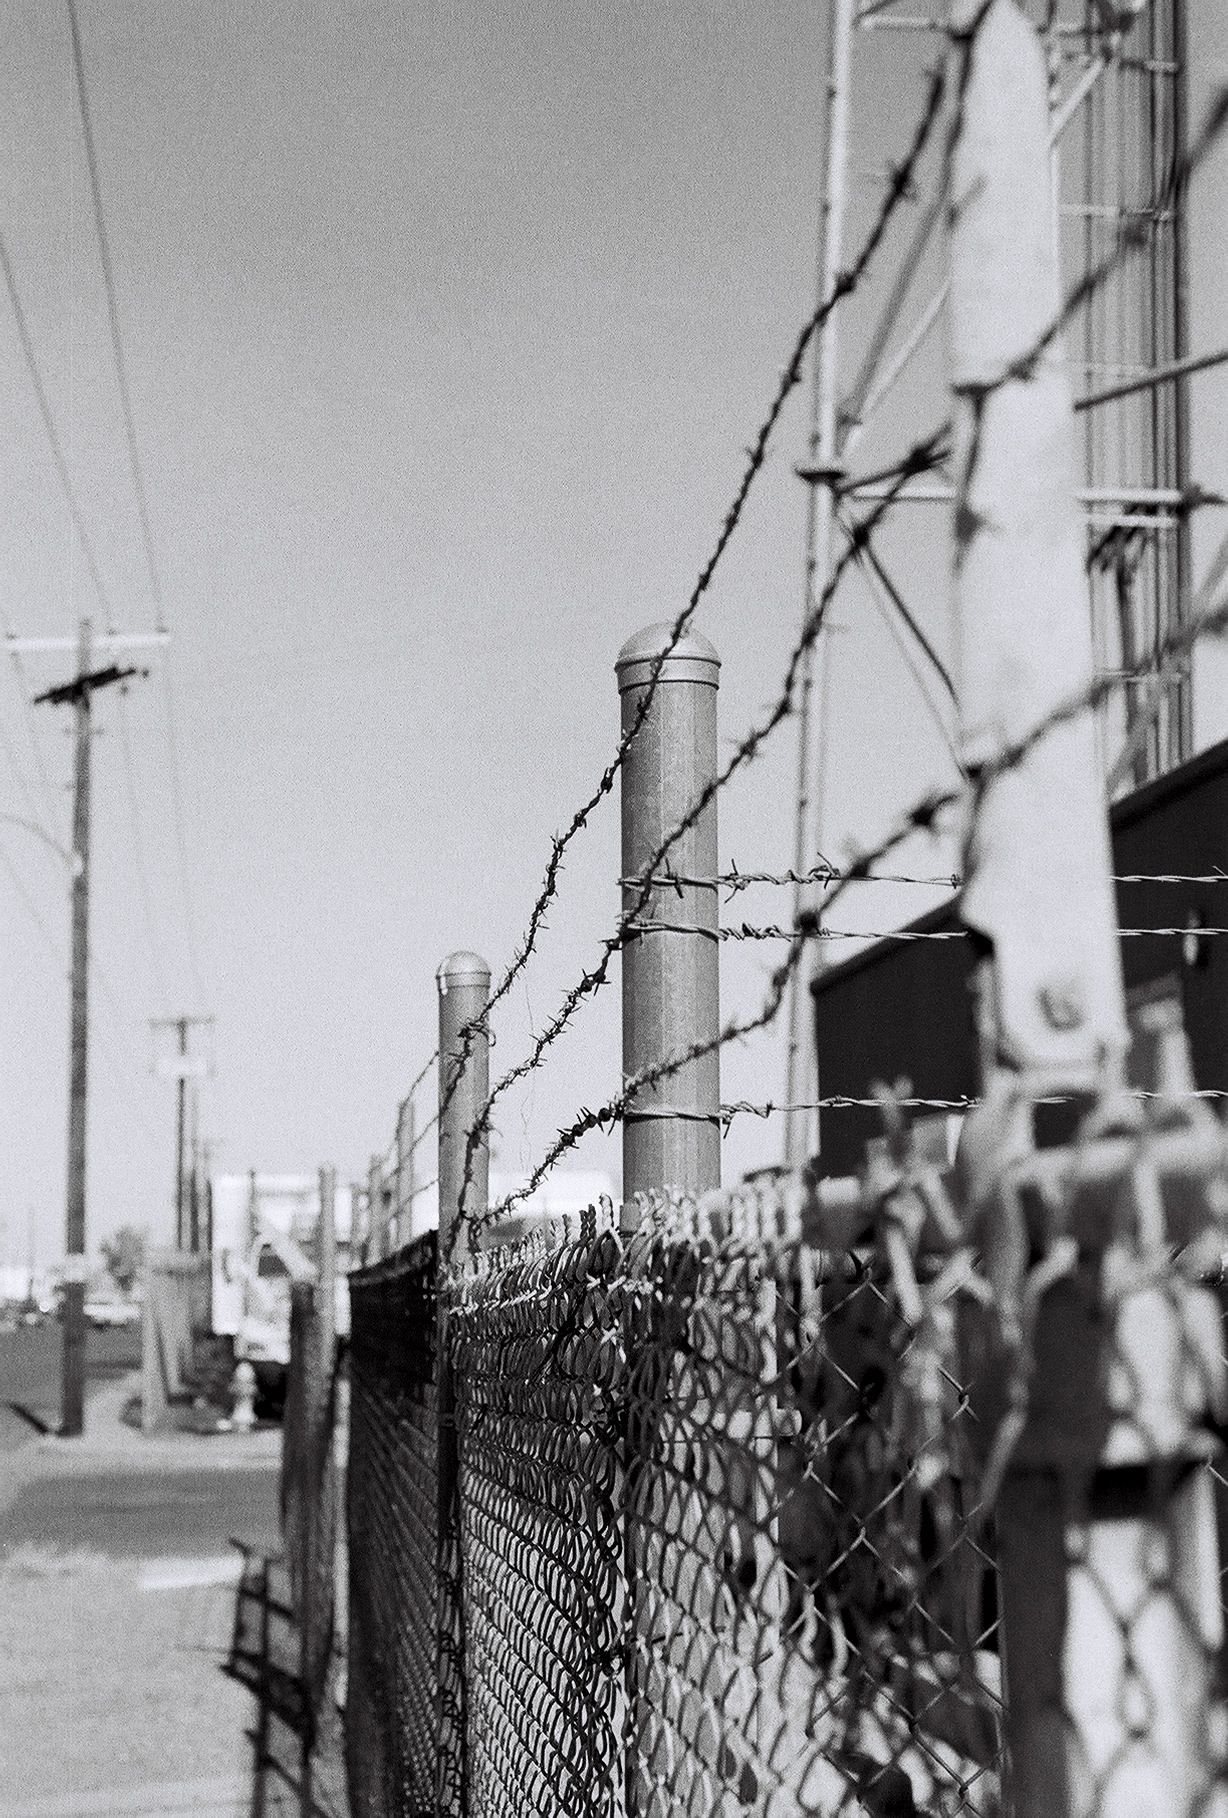 Barbed Wire Fence - Vintage - Black and White Photography - Film ...